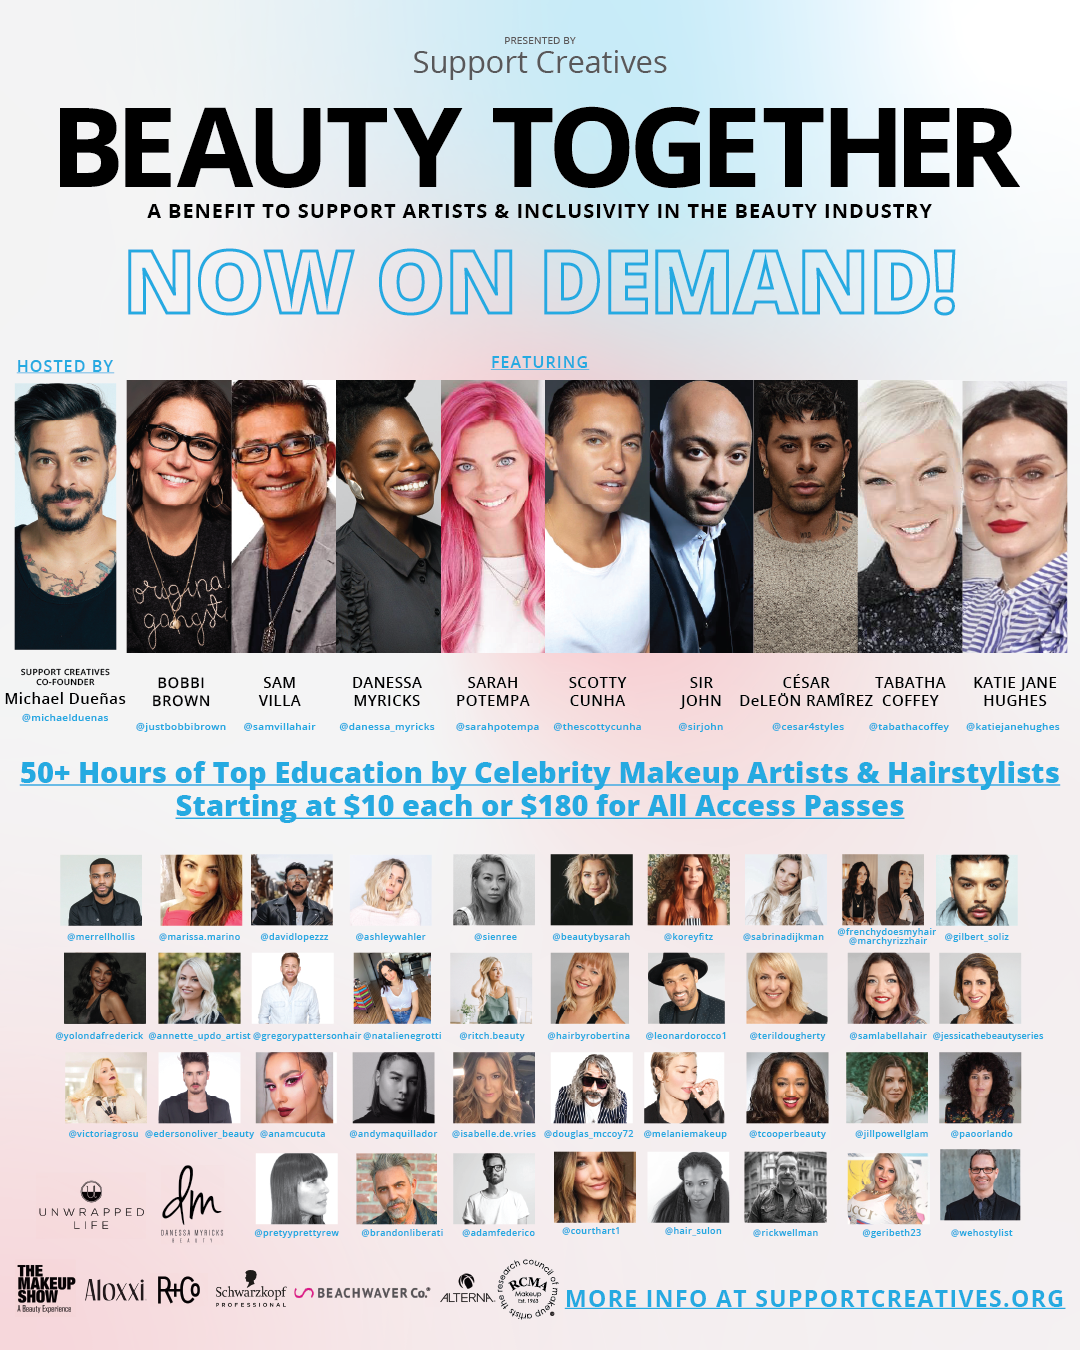 support creatives, beauty together, sarah potempa, cesar ramirez